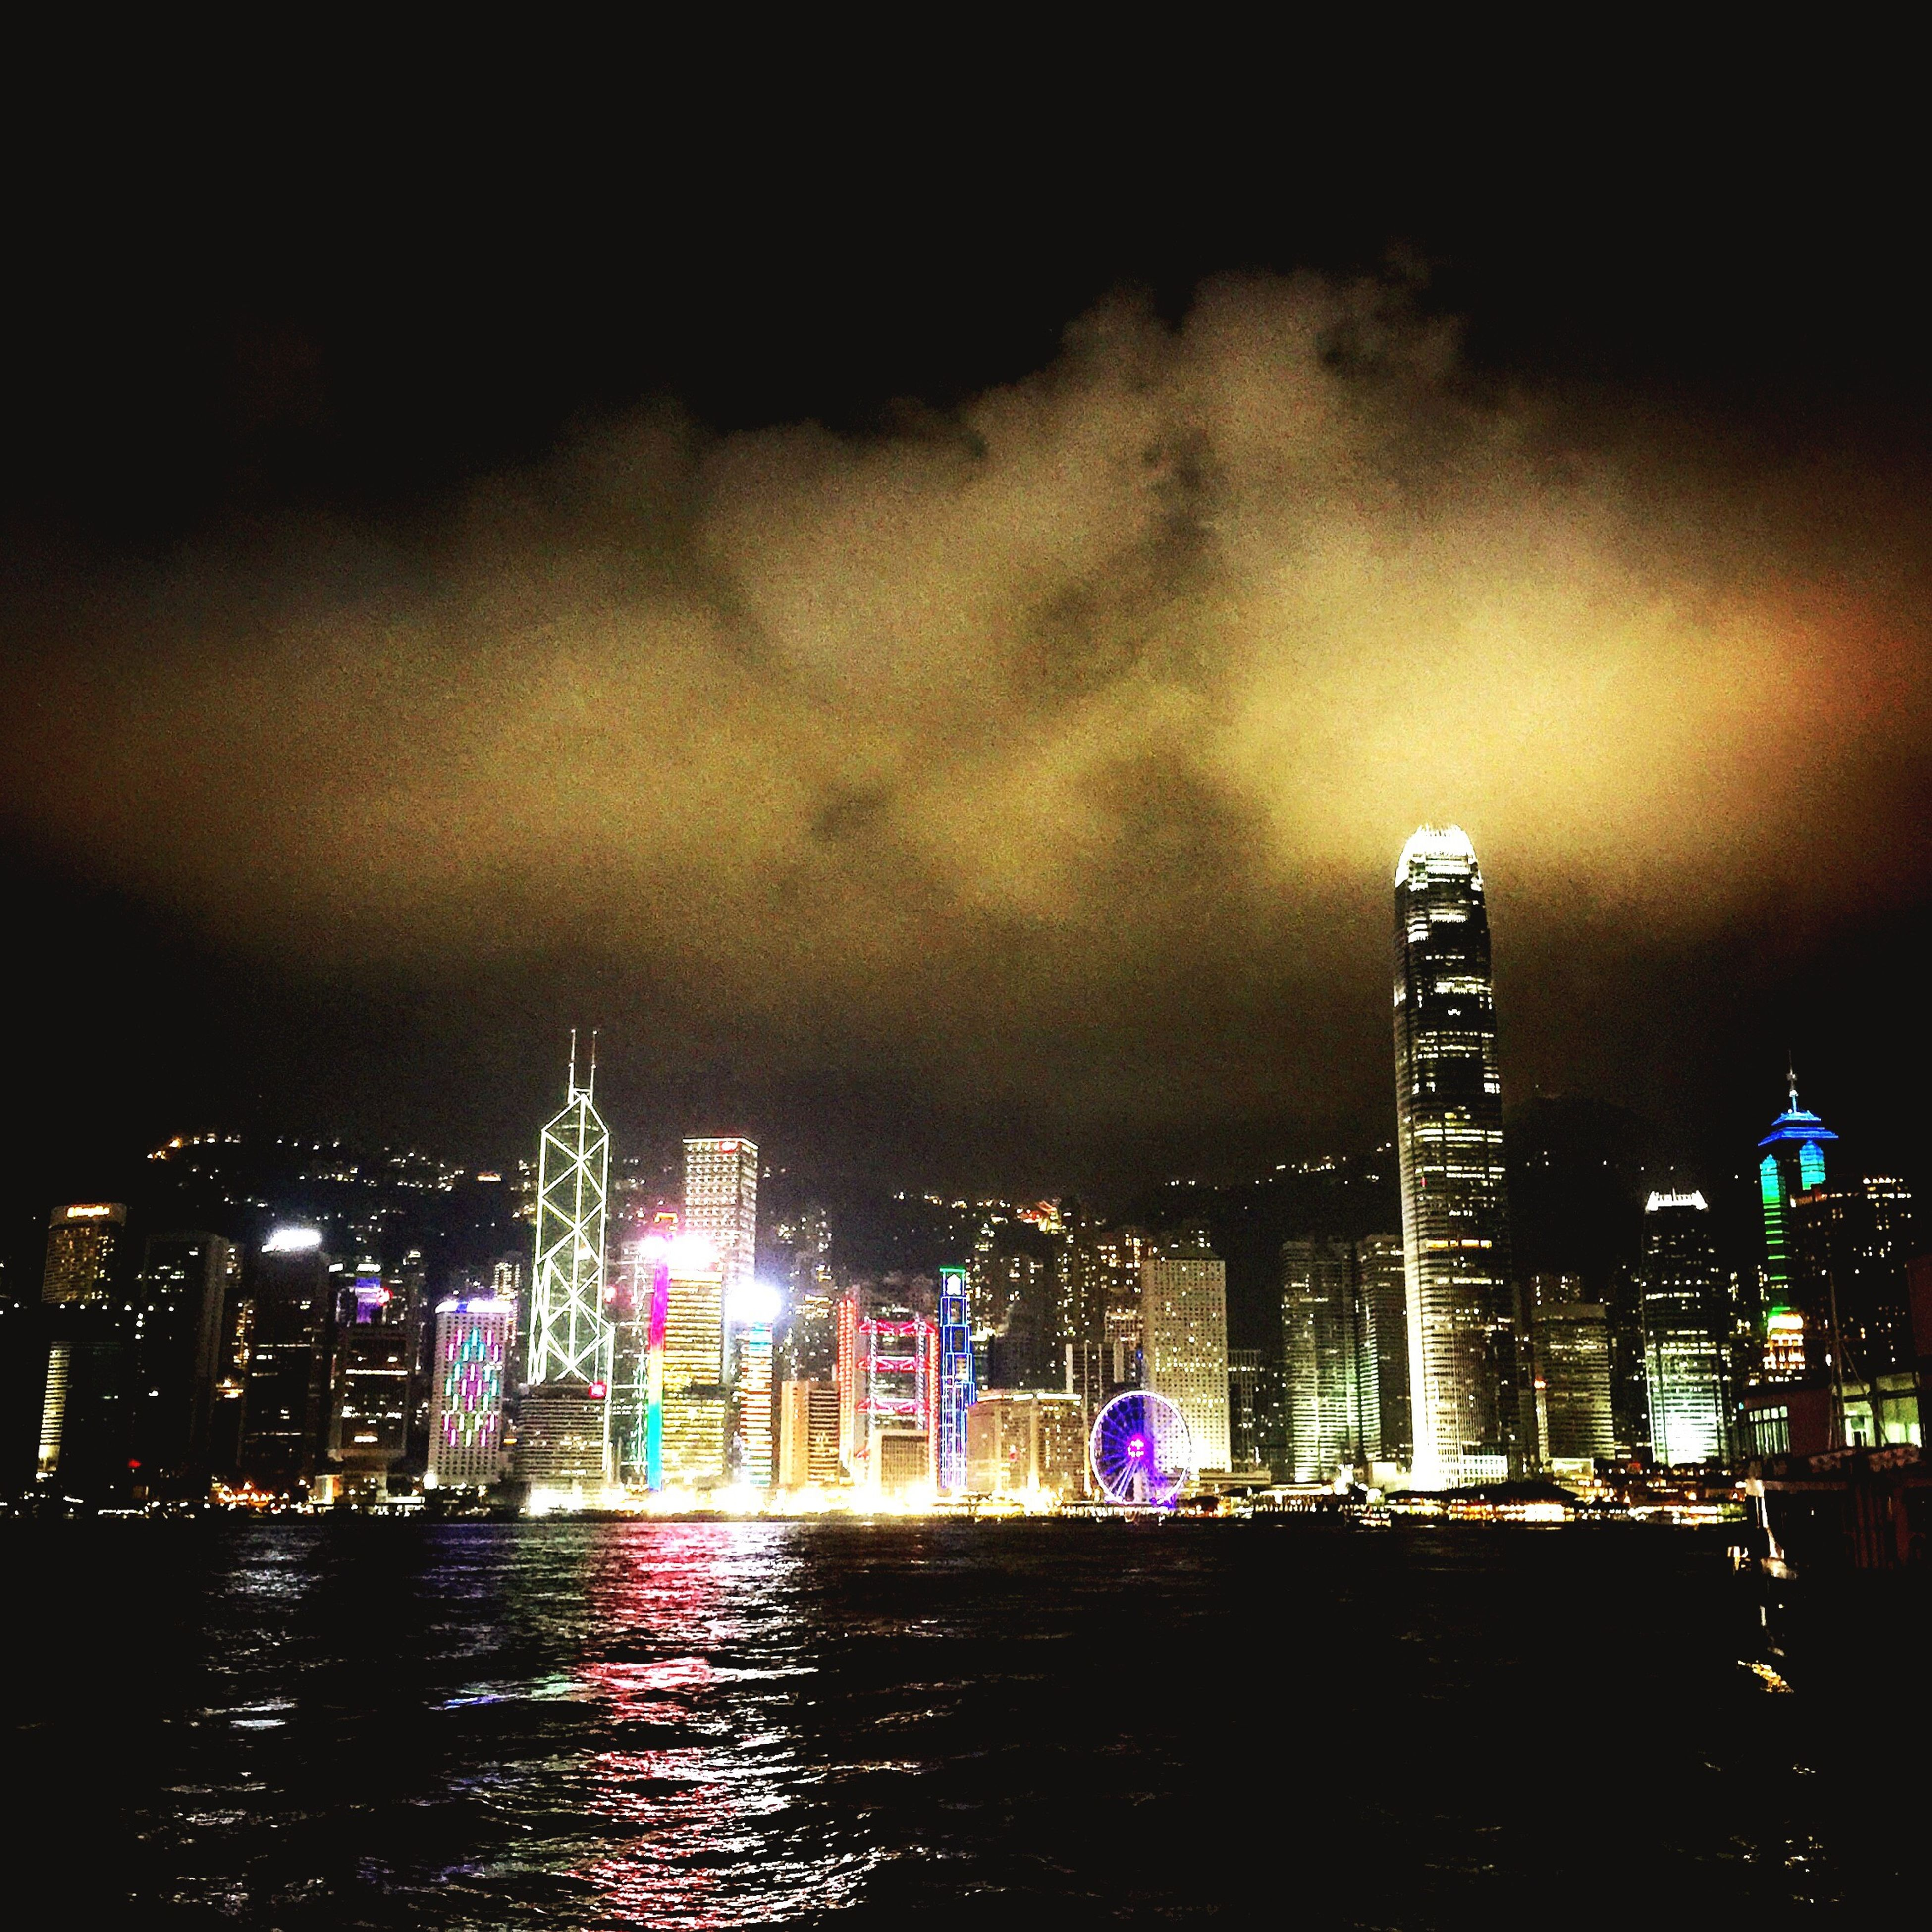 illuminated, city, building exterior, architecture, night, skyscraper, built structure, cityscape, water, waterfront, urban skyline, tall - high, modern, tower, sky, office building, river, financial district, capital cities, travel destinations